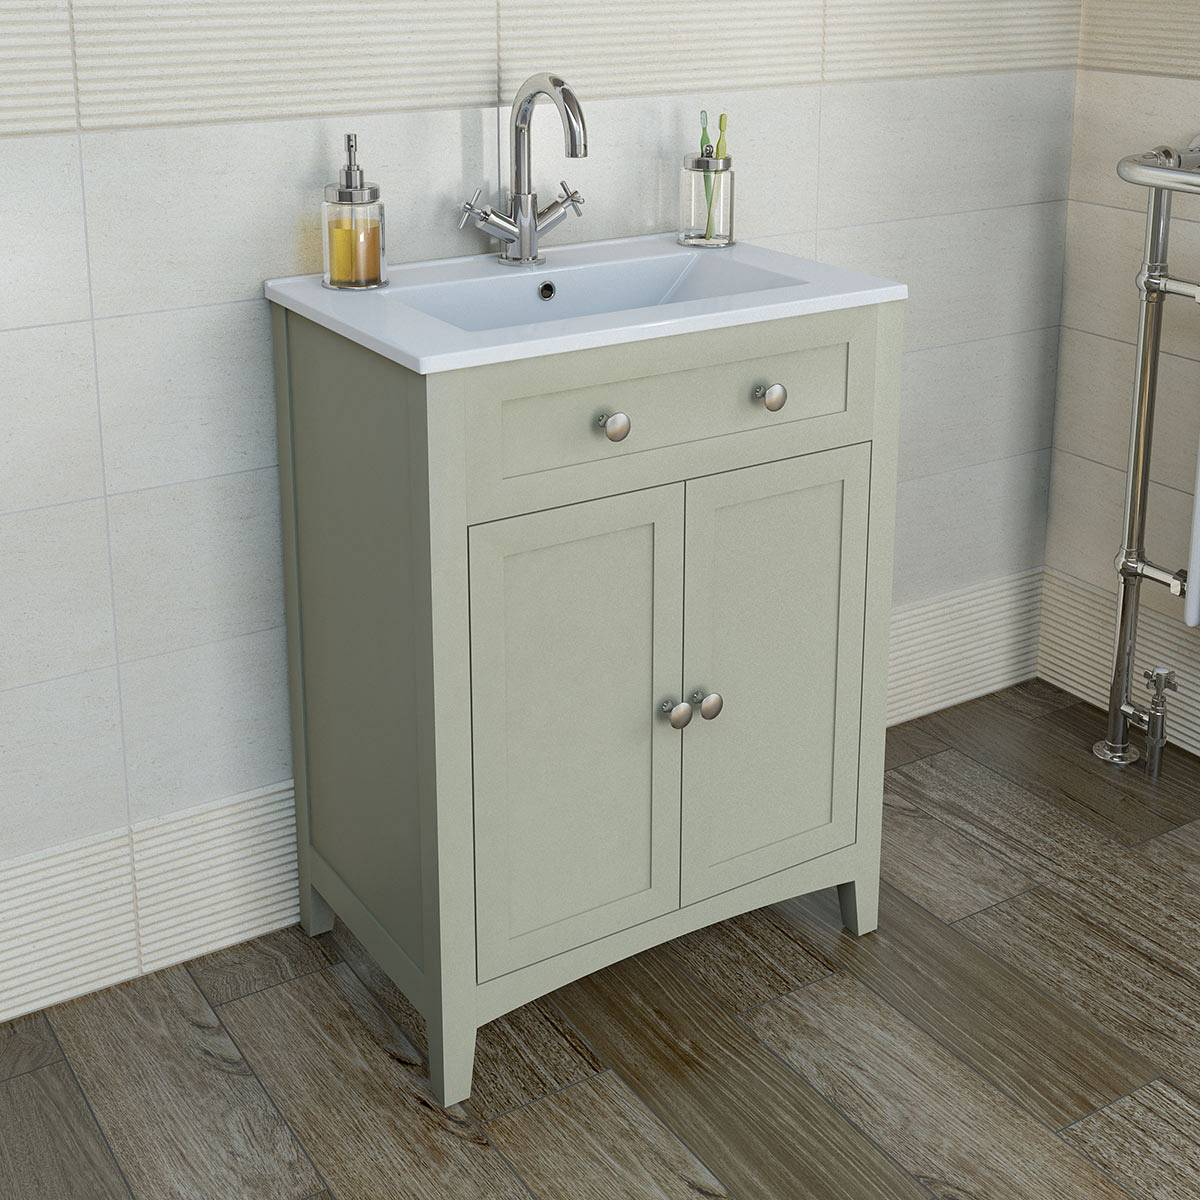 Luxury Camberley Sage 600 Door Unit u0026 Basin now only £299.99 from Victoria Plumb vanity unit with basin